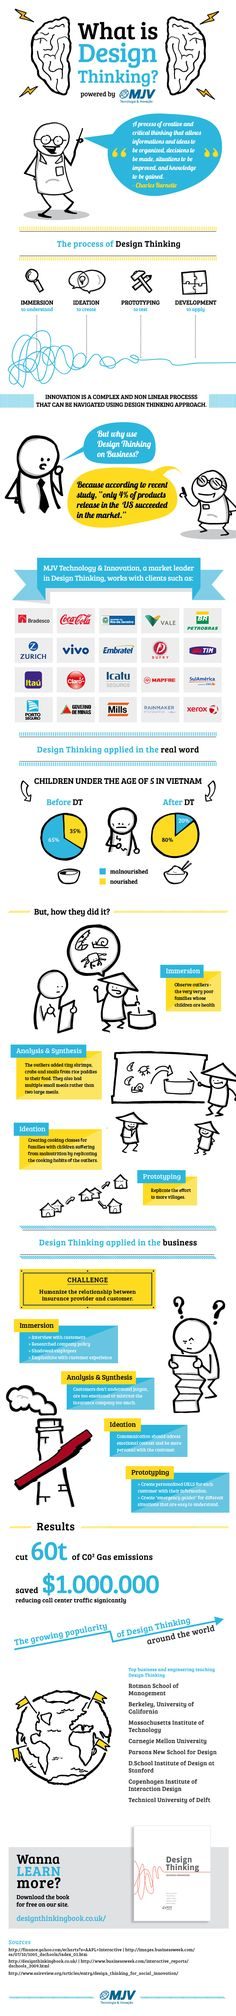 What is Design Thinking? | Innovation Field Notes